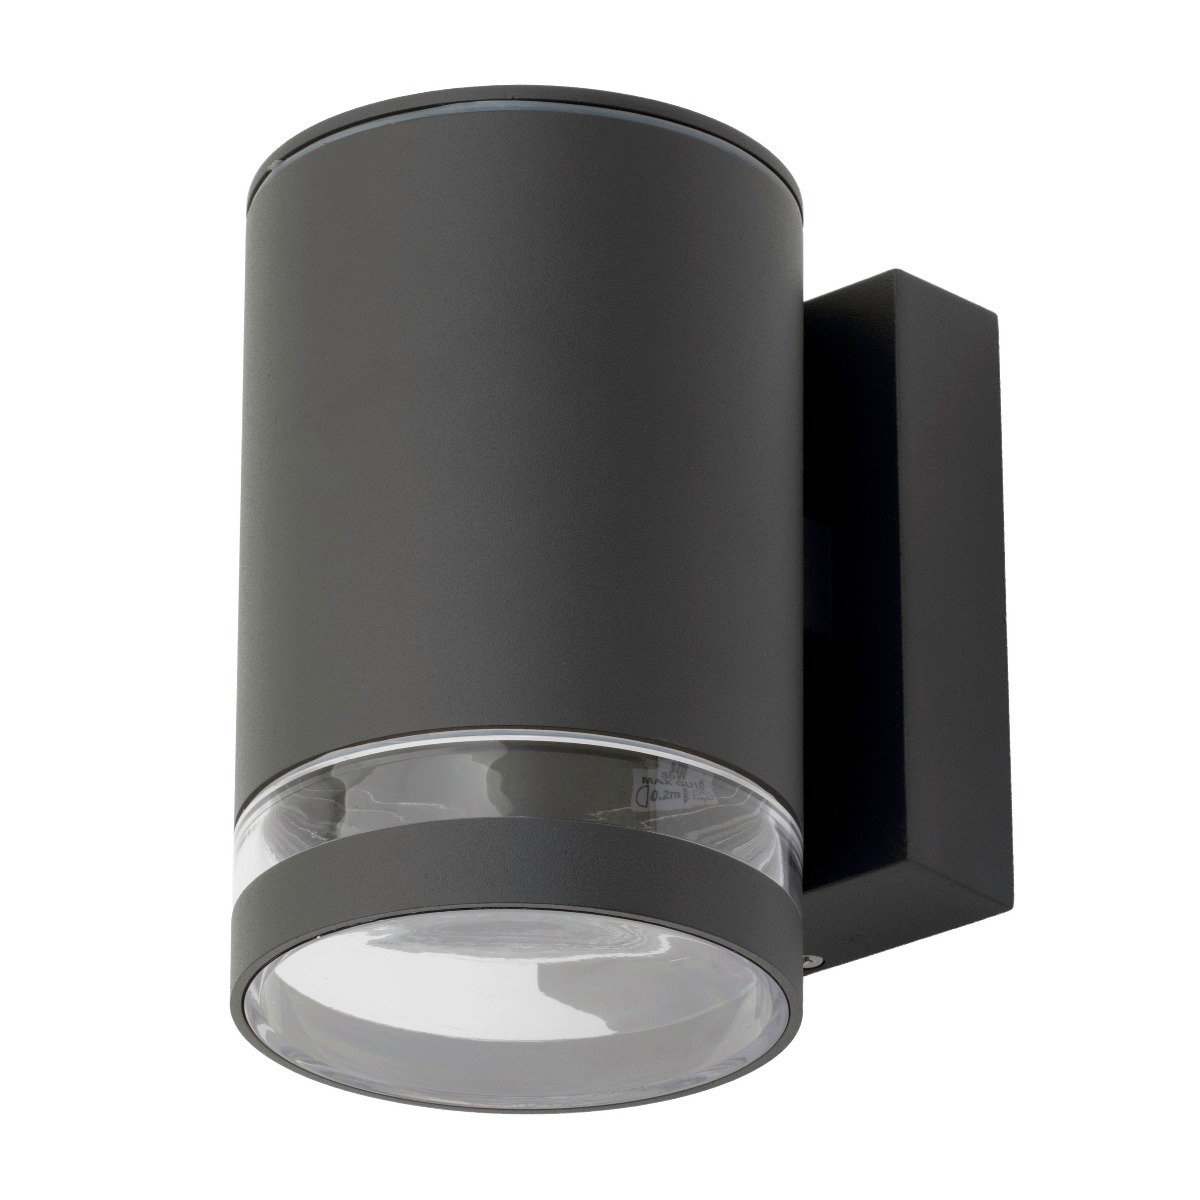 Cinder Outdoor Wall Light in Anthracite